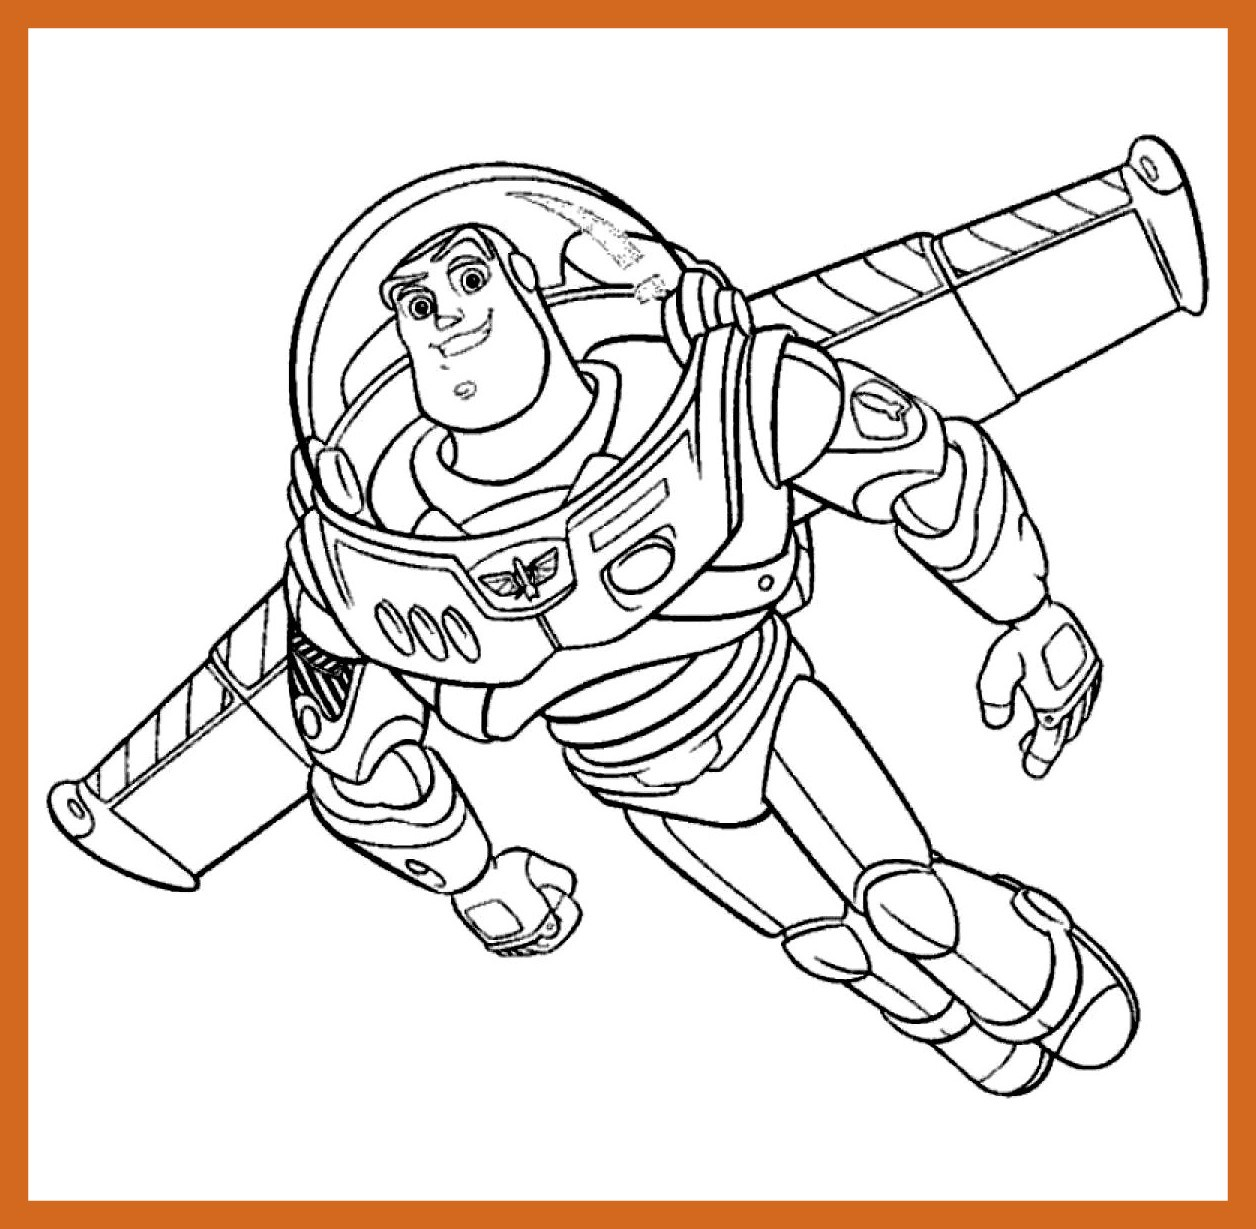 Hispanic Coloring Pages At Getcolorings